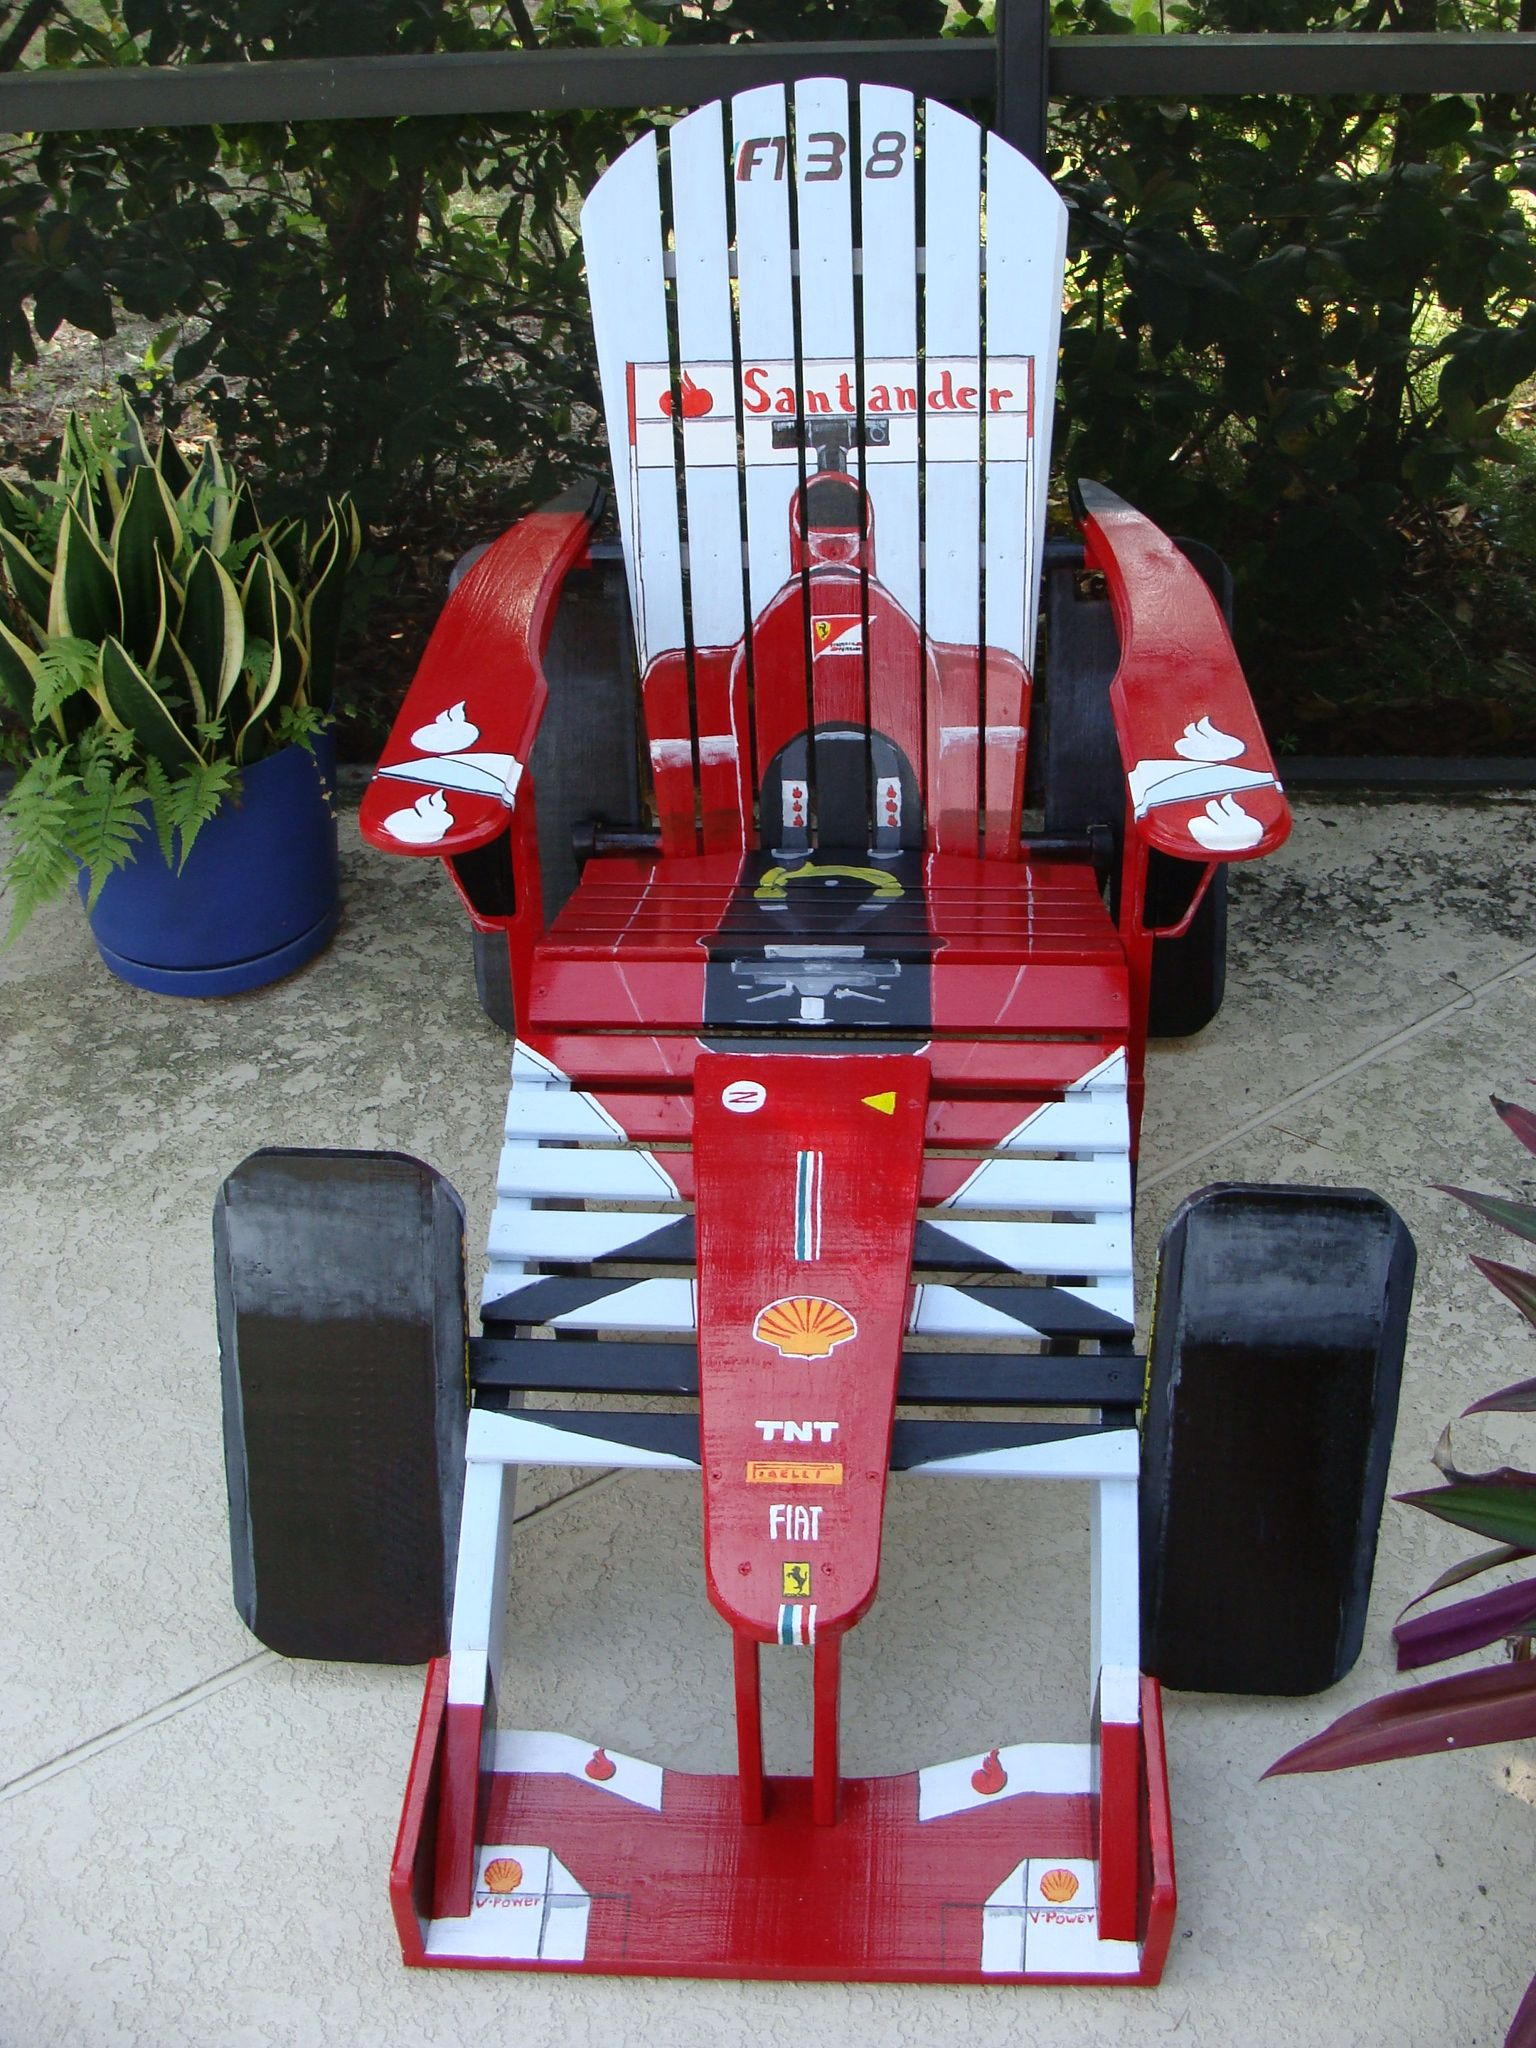 f1 racing chair hanging chairs garden ferarri handpainted custom designed